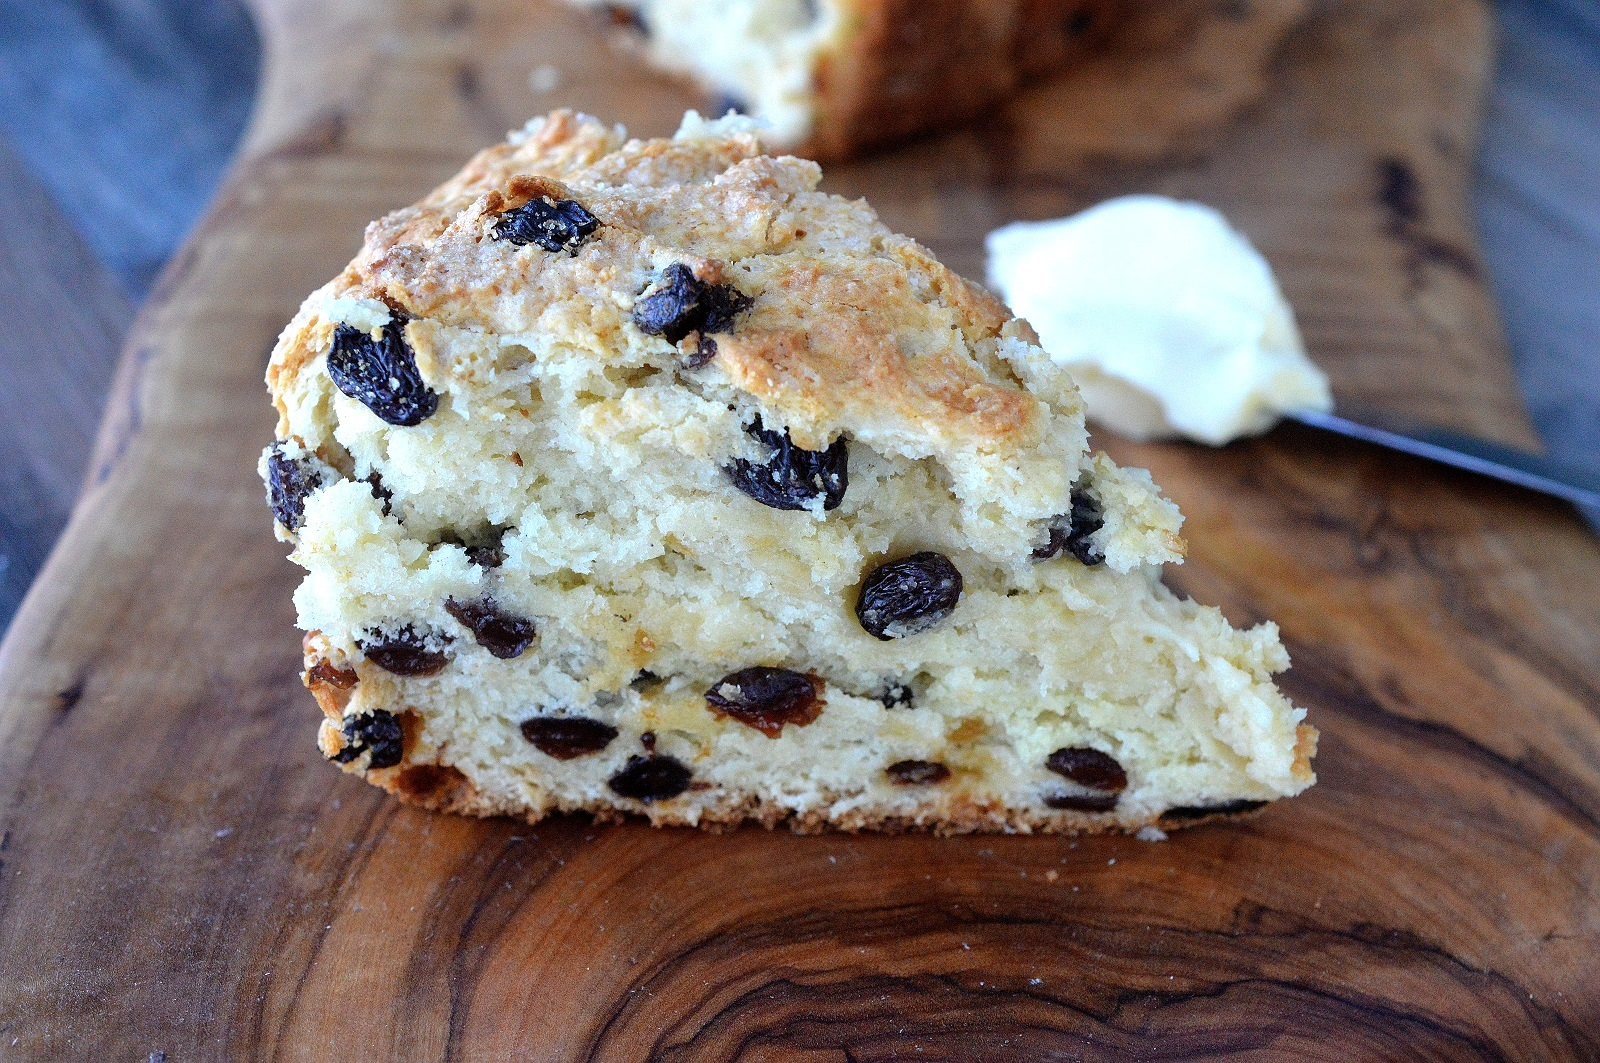 The BEST Irish Soda Bread! It takes less than 10 minutes to prep and 60 to bake. The result is a moist, sweet, cake-like Soda Bread of your dreams